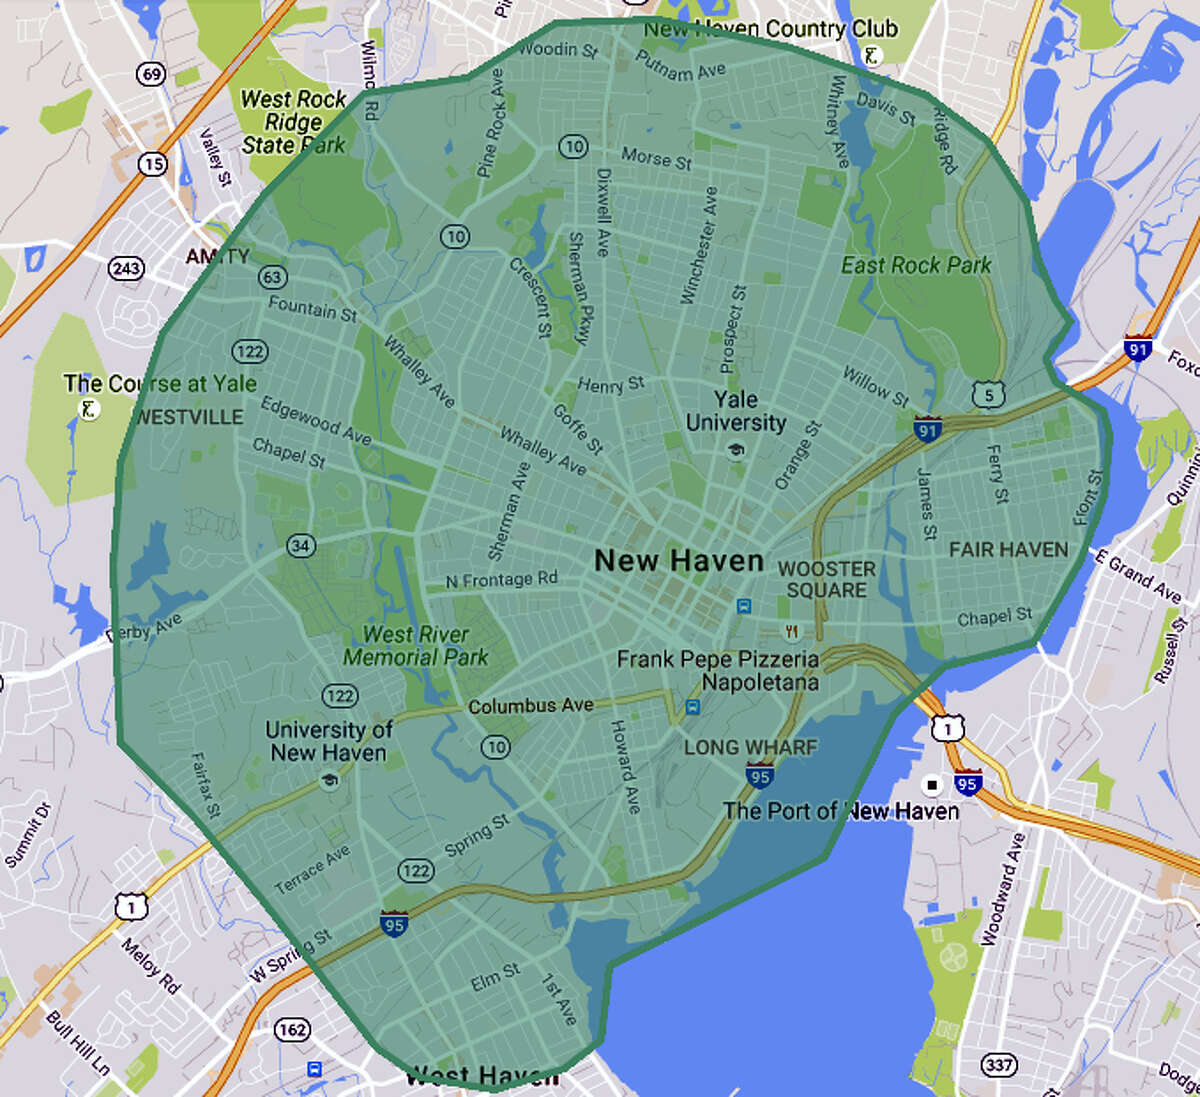 UberEats' current coverage area map, which will grow as more restaurants are added weekly.